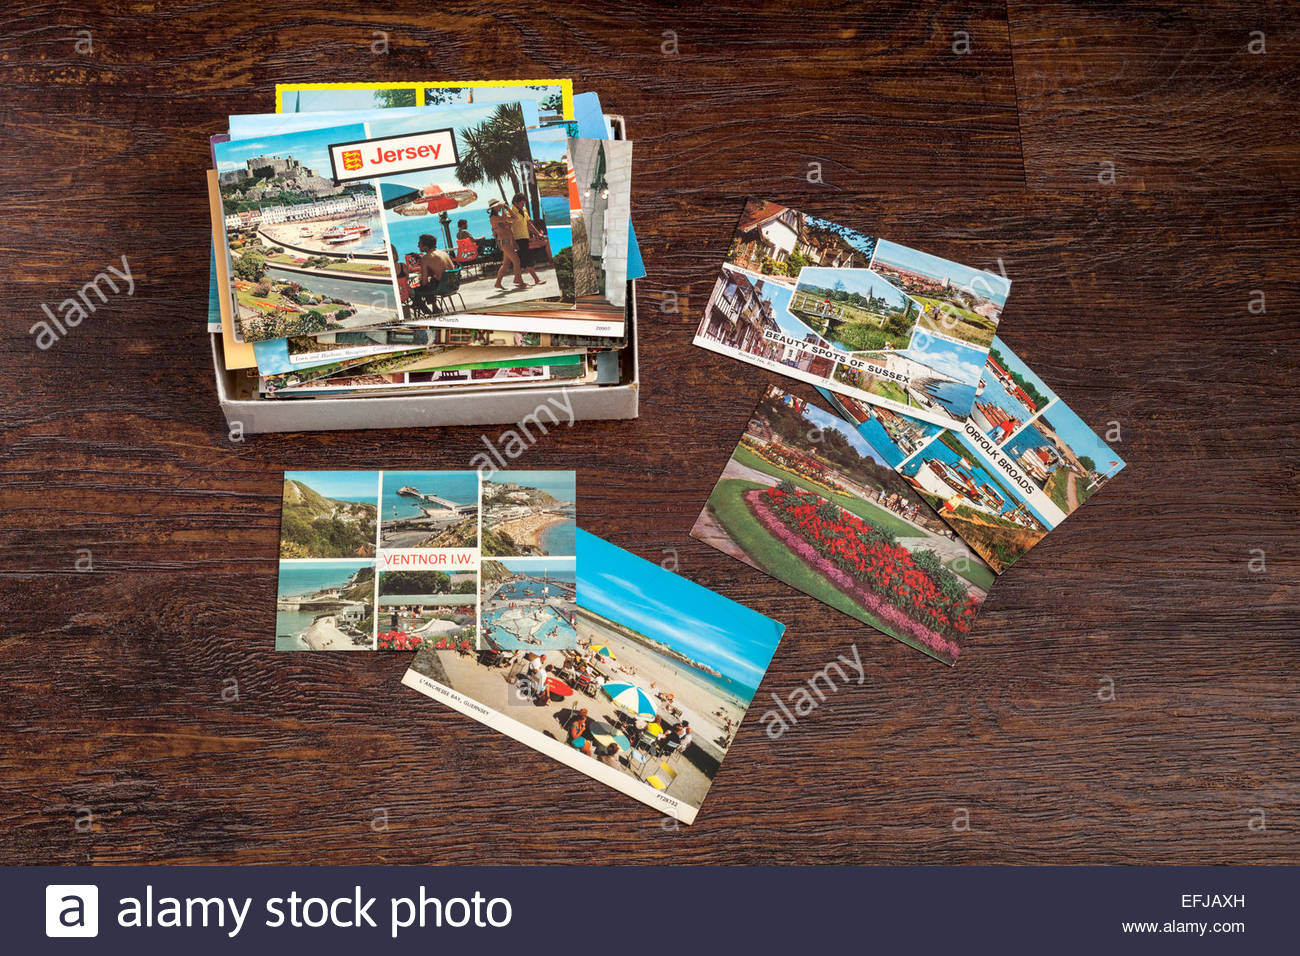 A collection of old postcards - Stock Image